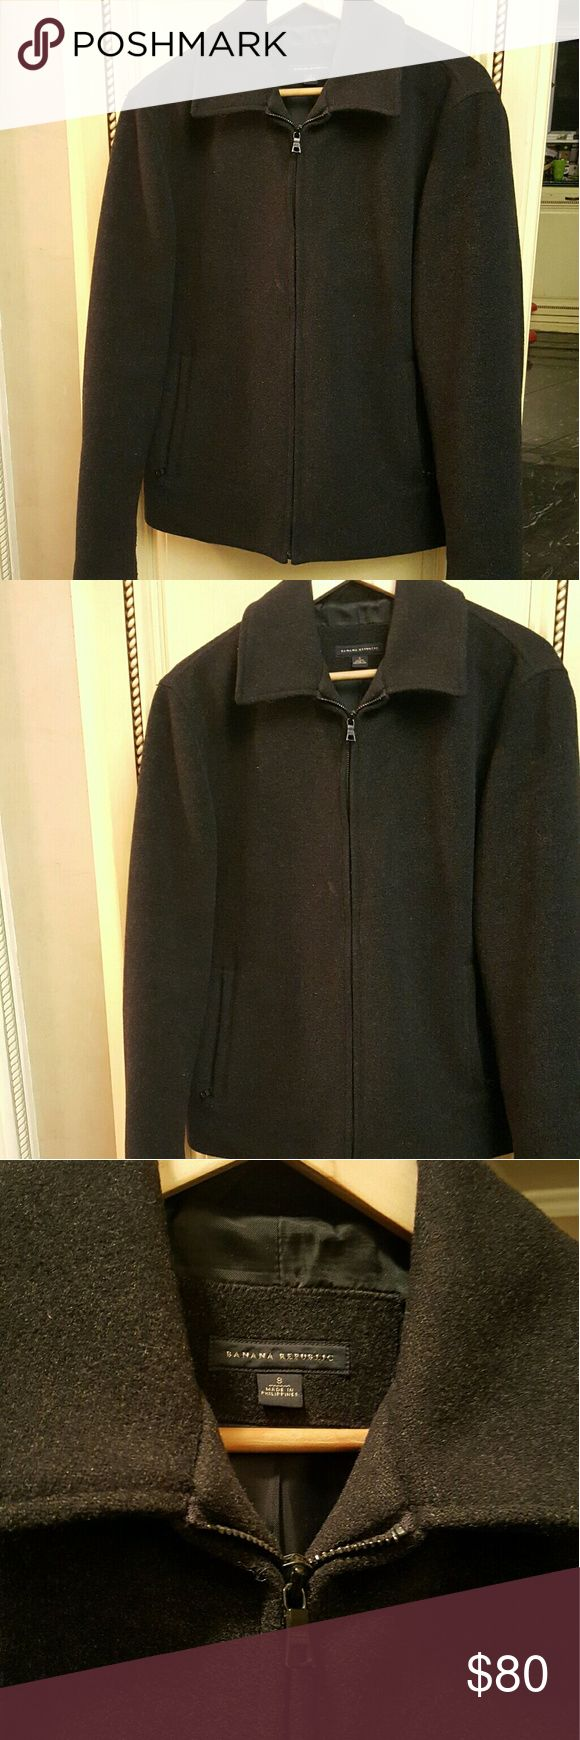 SALE! MENS- Banana Republic Pea coat Mens banana Republic Black Pea coat with 2 zippers pockets in great condition  **2-7bin (storage note to self) Banana Republic Jackets & Coats Pea Coats